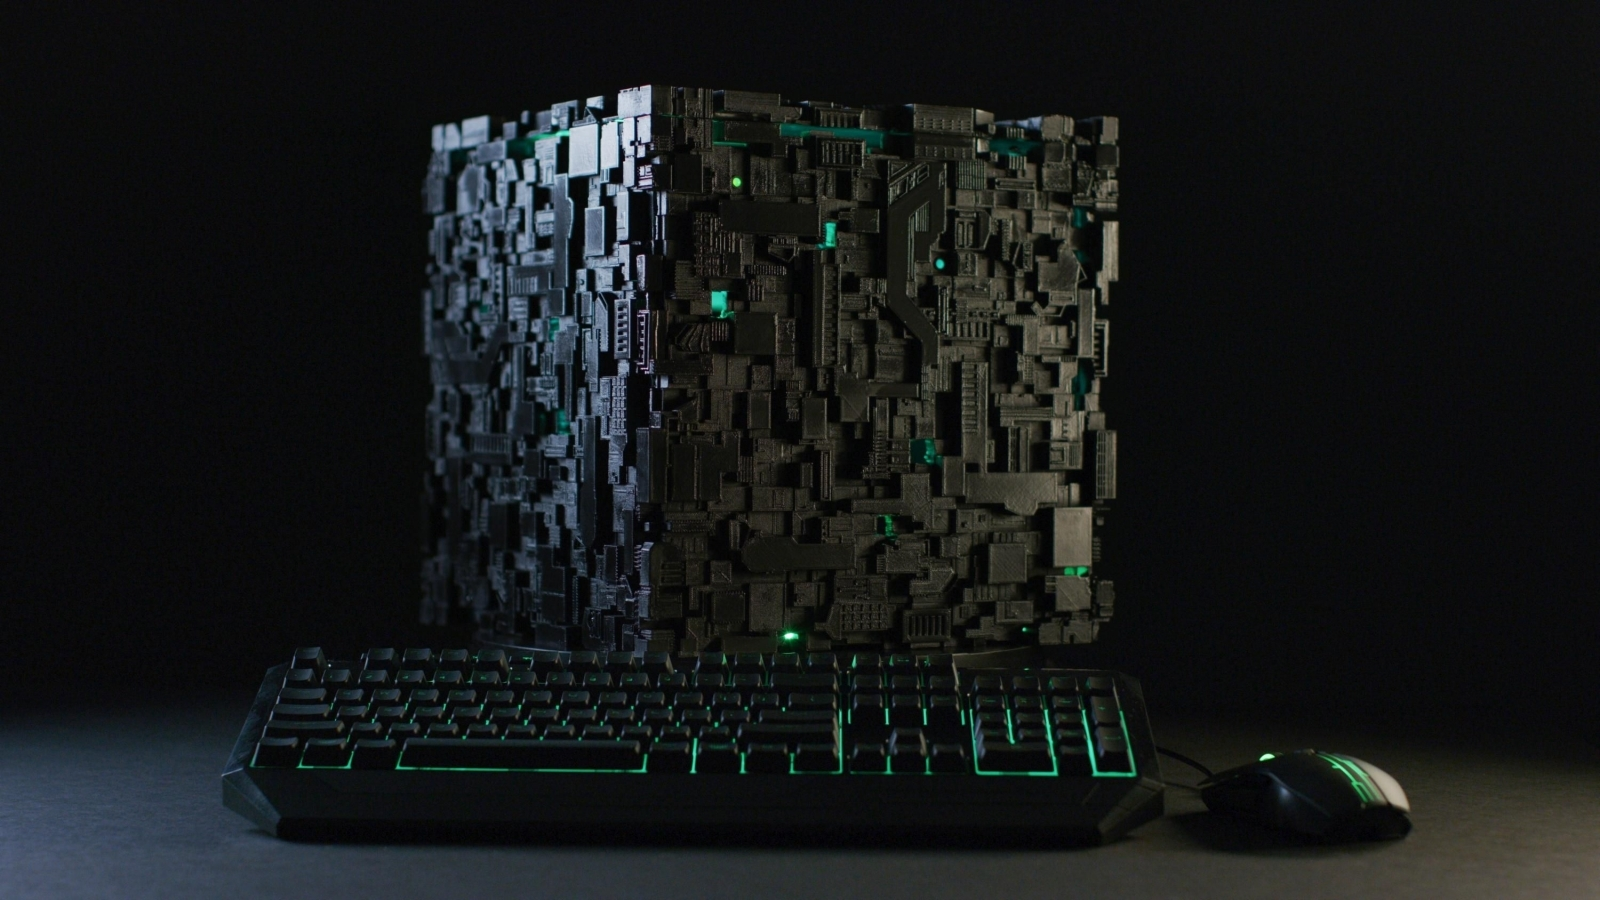 Assimilate your desktop with this Star Trek 'Borg Cube